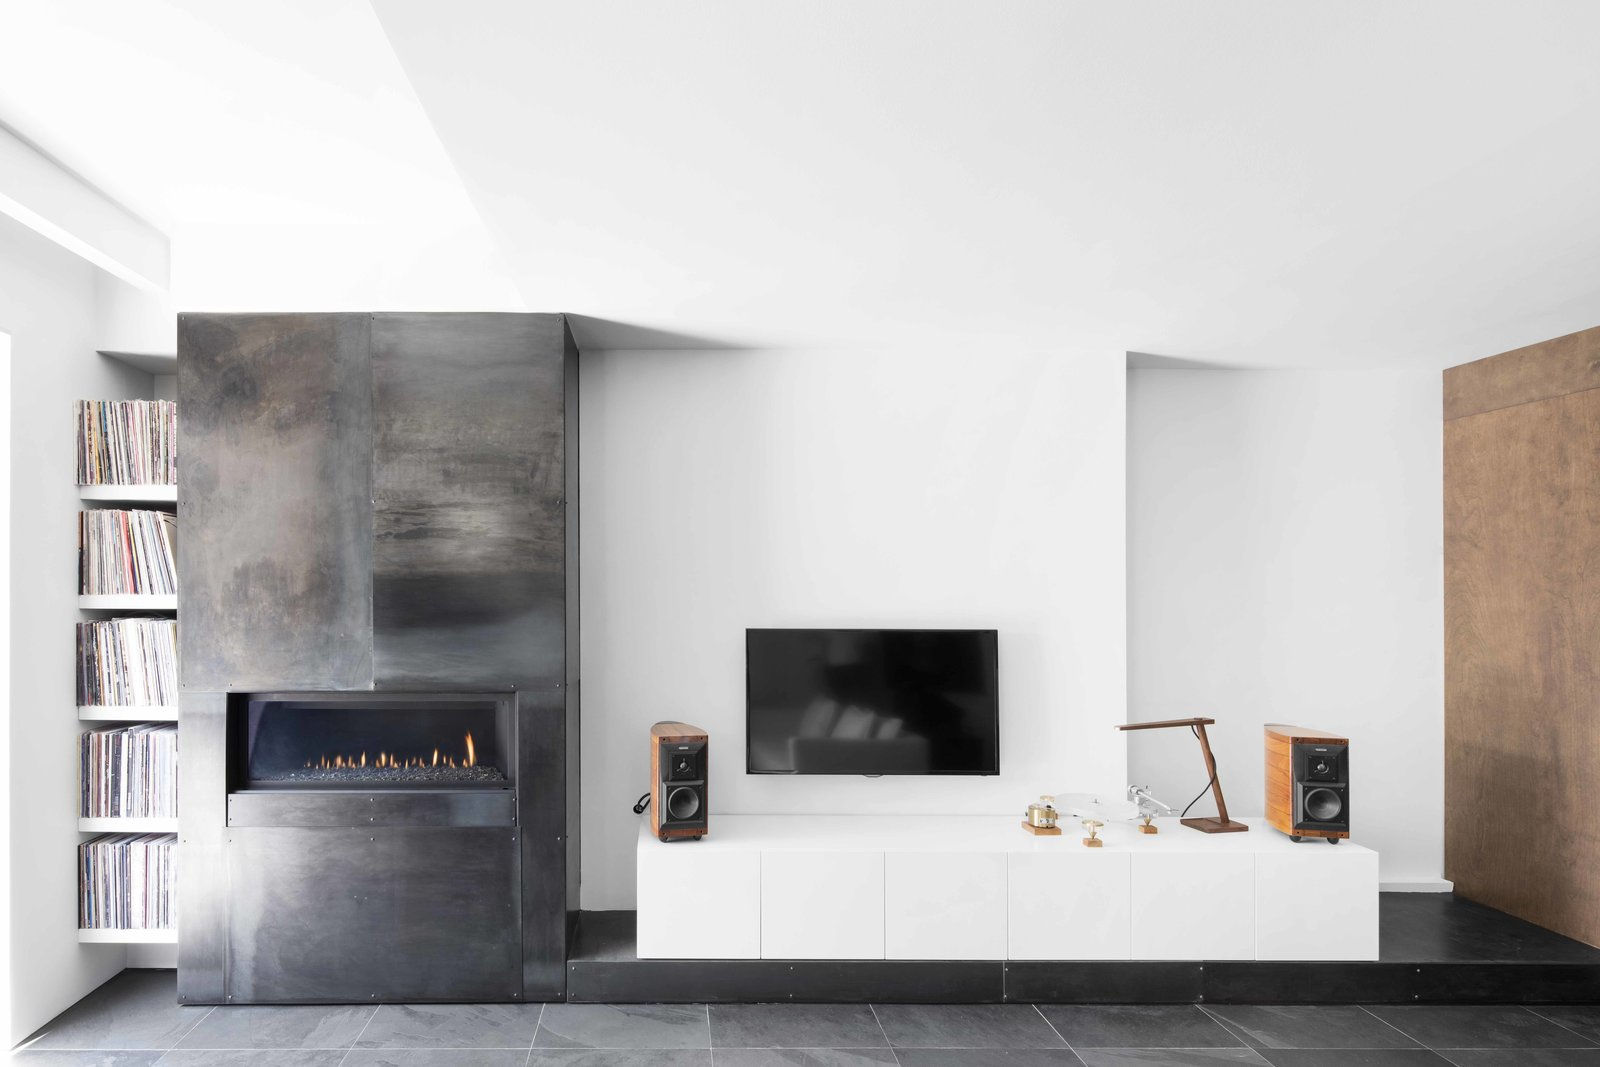 The communication between interior and exterior is unmistakable. The polished steel that surrounds the fireplace and the concrete floor's dark finish recall the home's exterior, while the contrasting stark white walls create a visual language as striking as the building's black facade.  Photo 3 of 7 in A Monochromatic Renovation for a 19th-Century Montreal Home